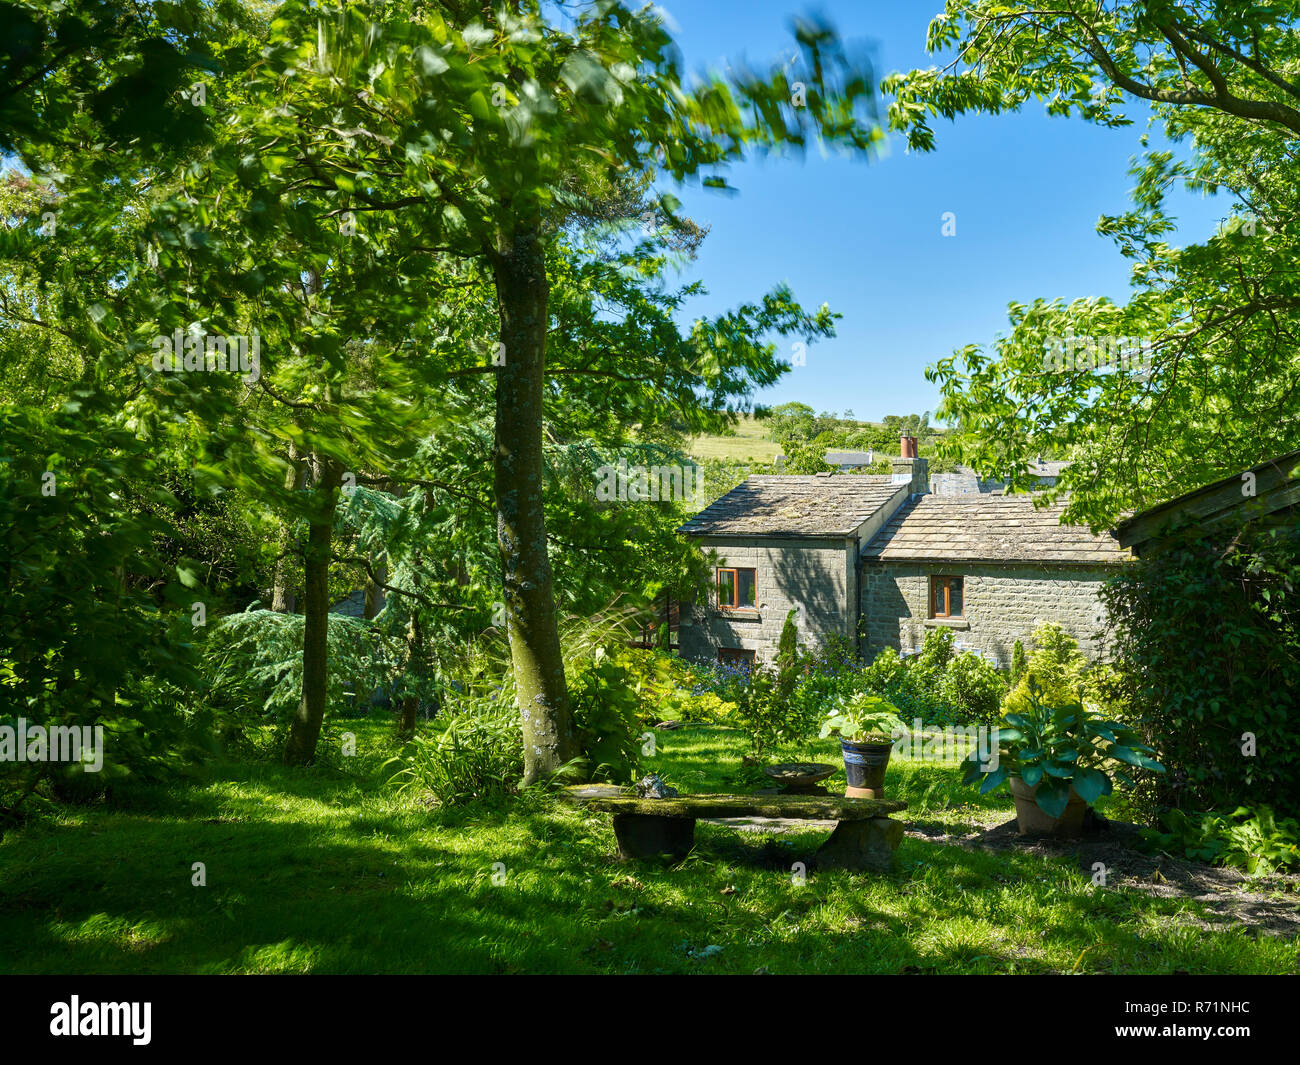 Bewerley, Nidderdale, North Yorkshire, UK. 17th June 2017. Traditional Yorkshire Dales smallholding cottage basks in sunshine with cloudless blue sky. - Stock Image